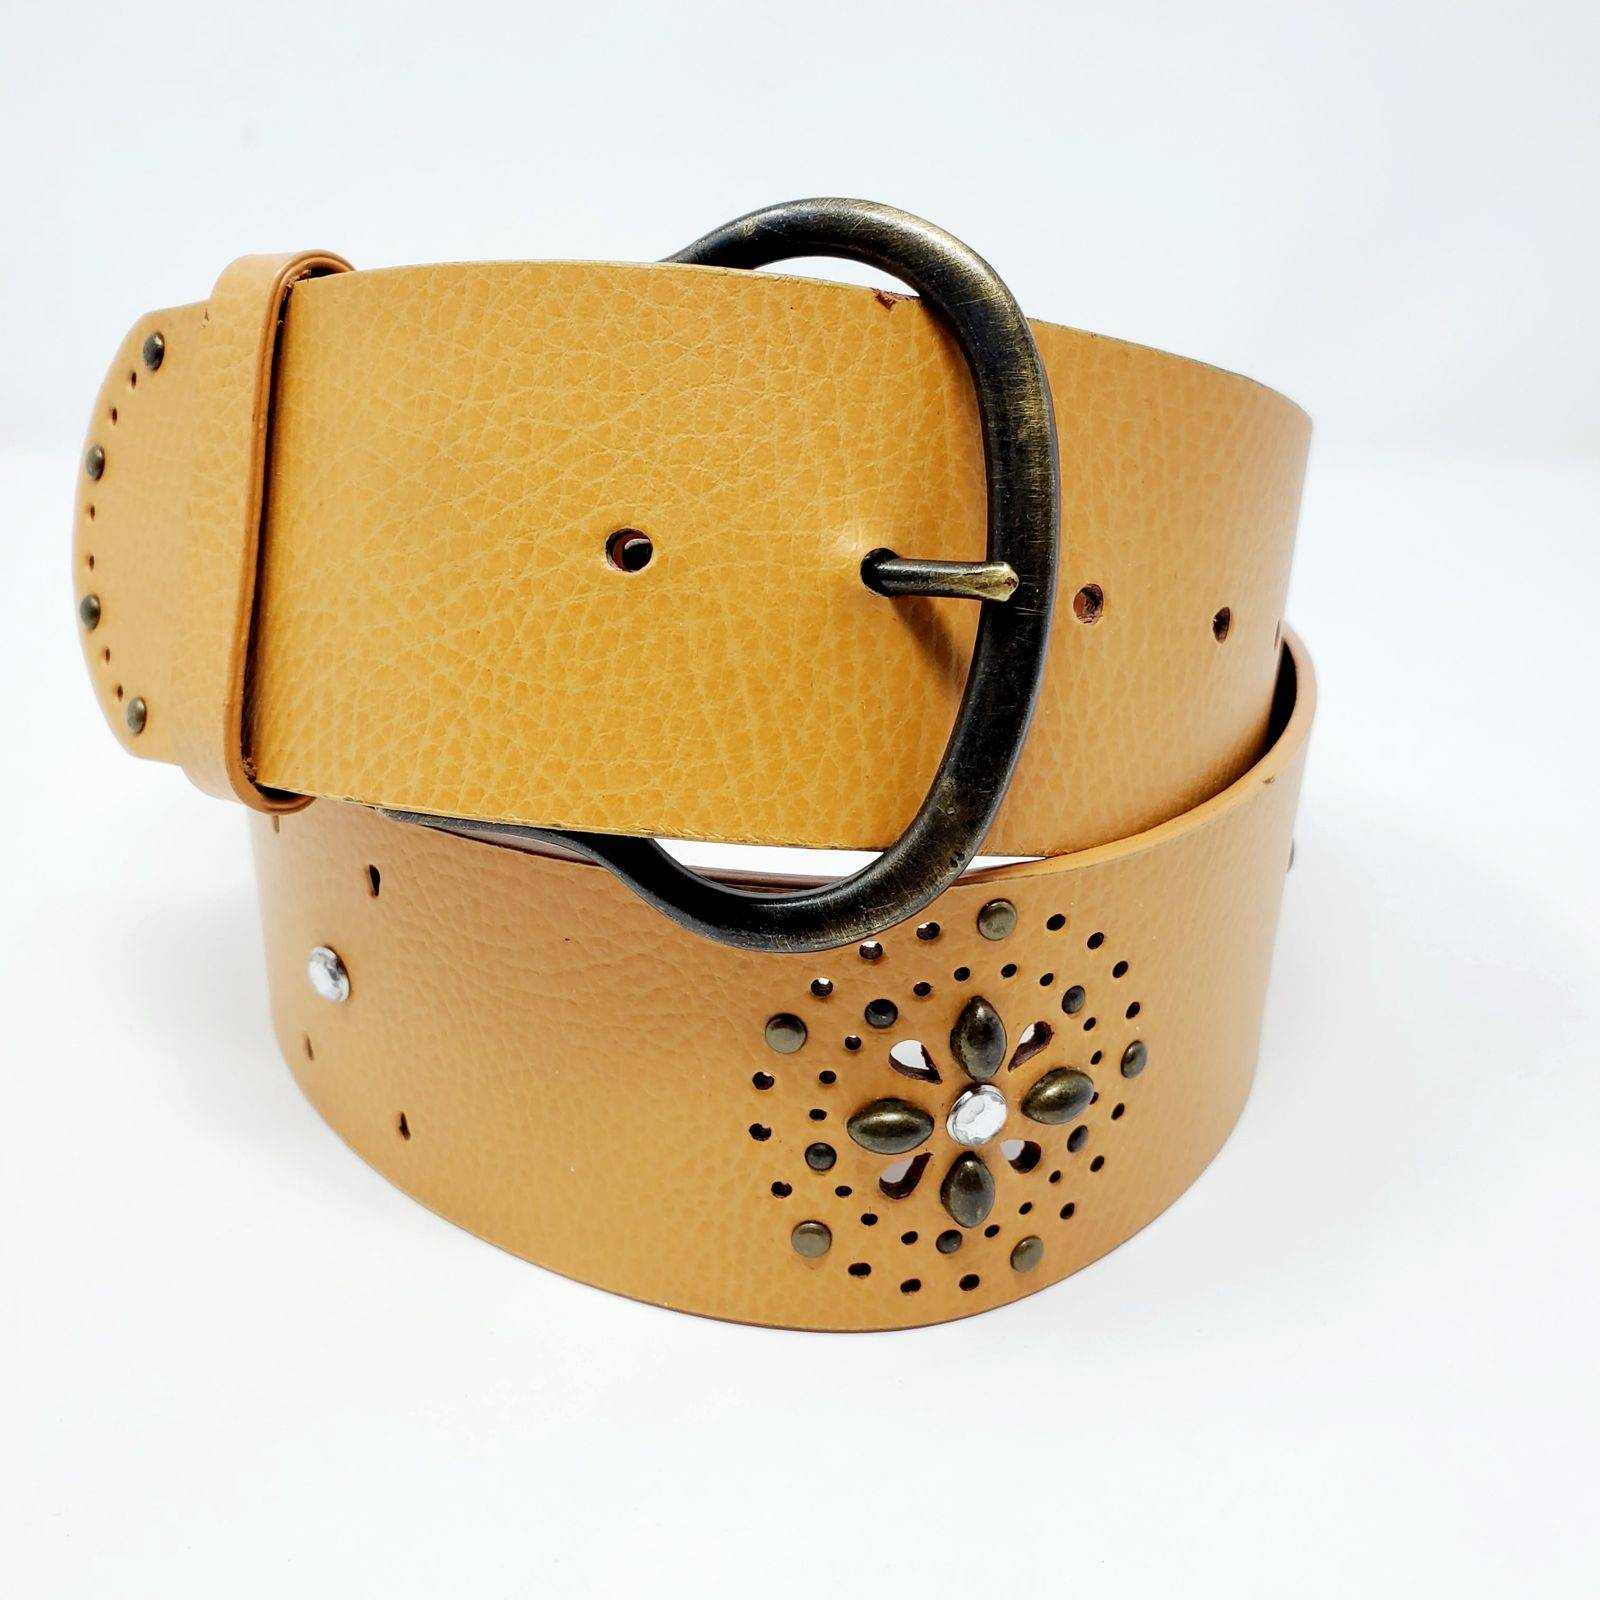 Candie's Embellished Stud Leather Belt